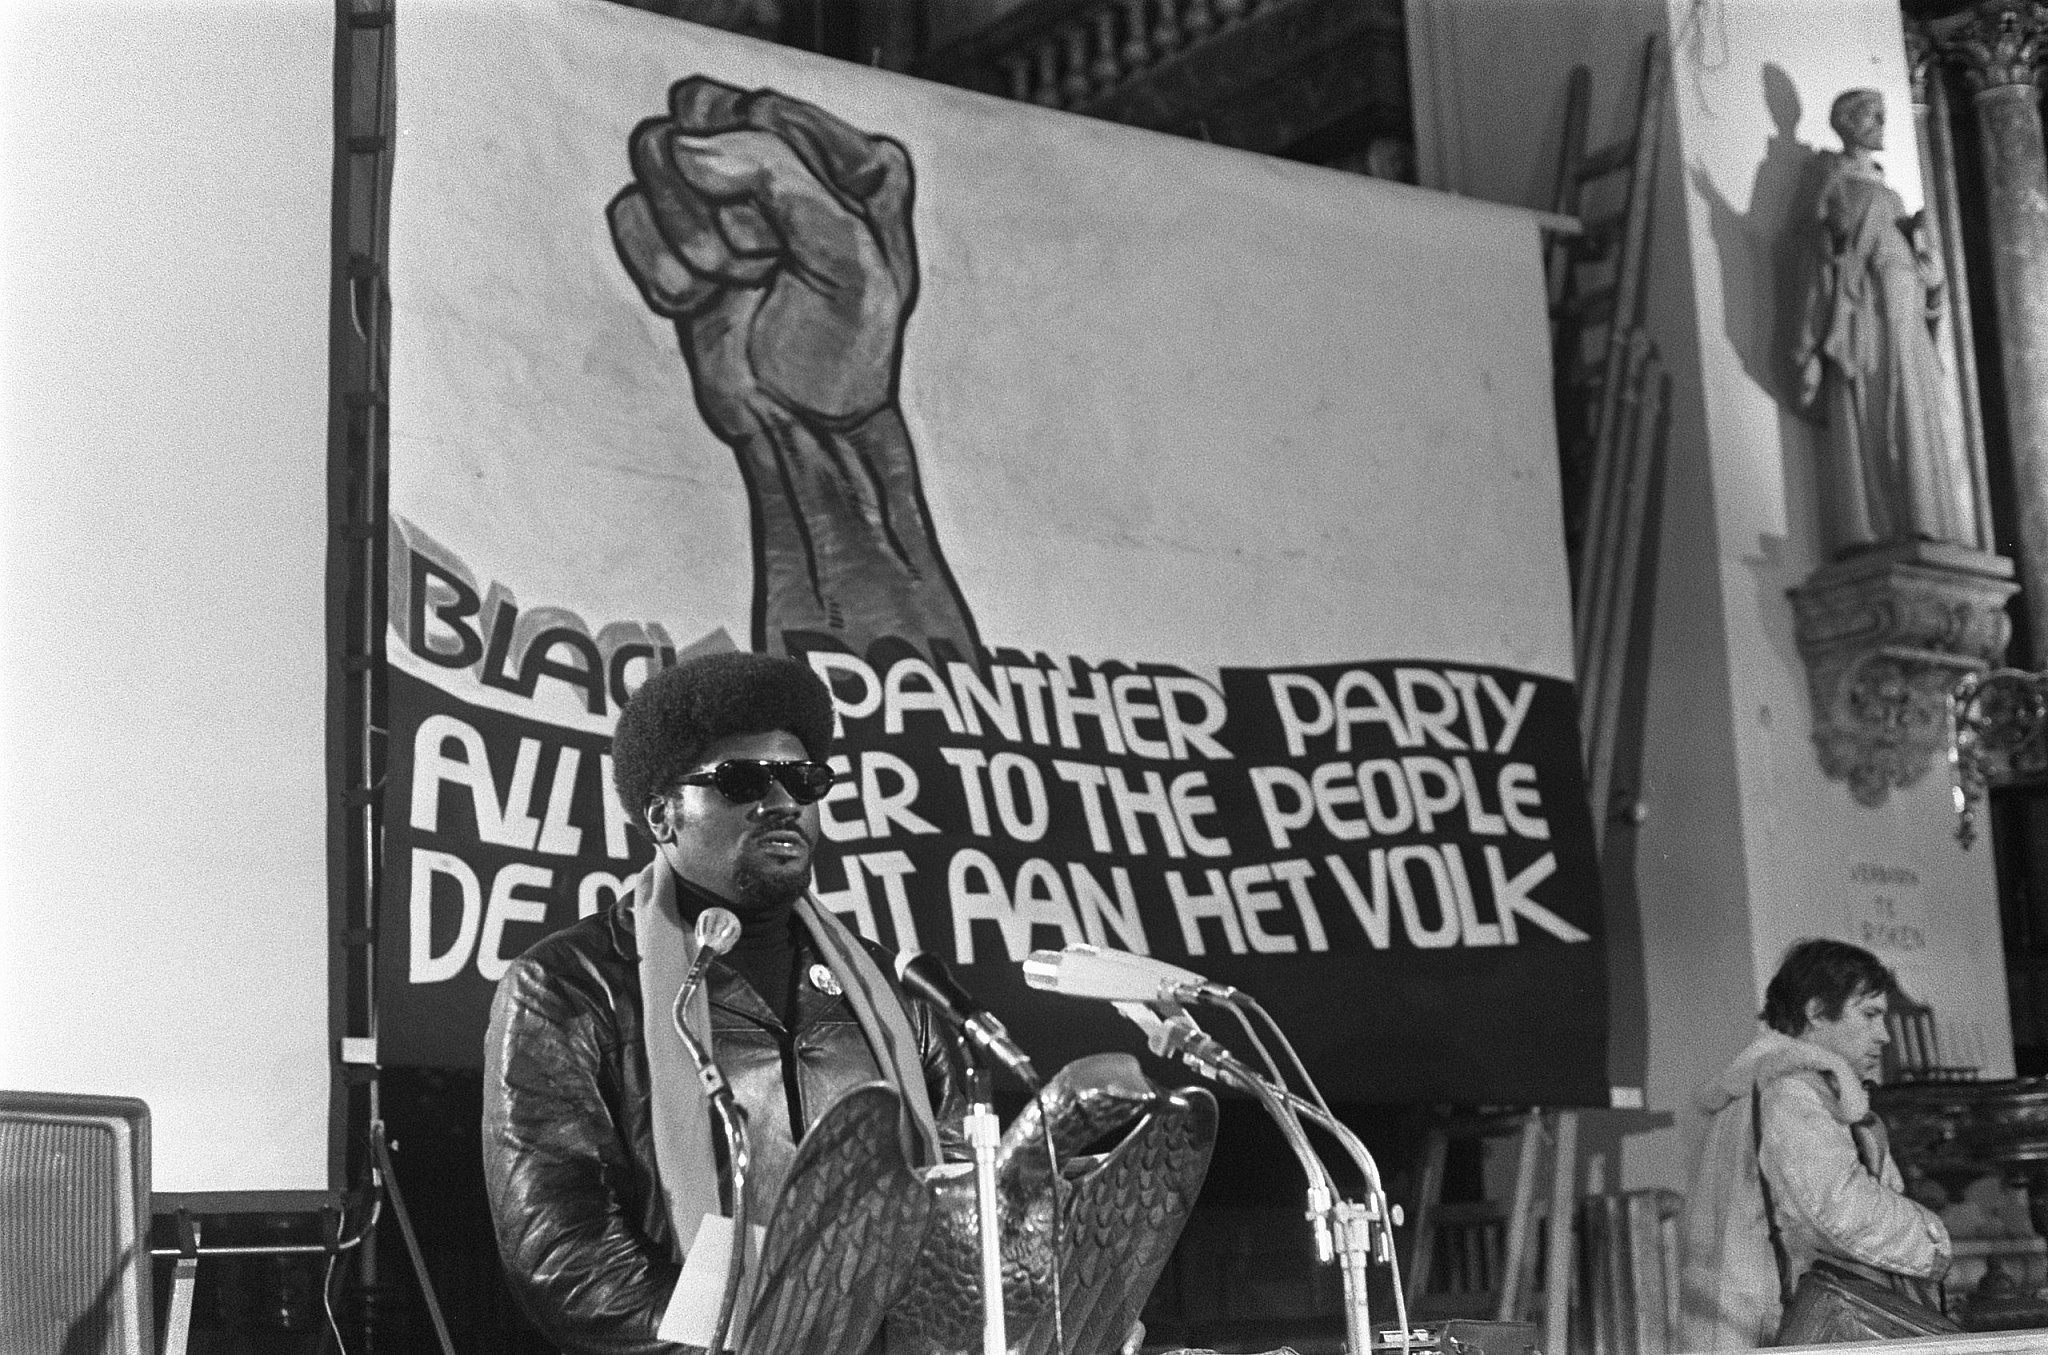 Elbert Howard, a founding member of the Black Panther Party, delivering an address in Amsterdam, Netherlands, Jan. 16, 1970 (Rob Mieremet/Anefo)